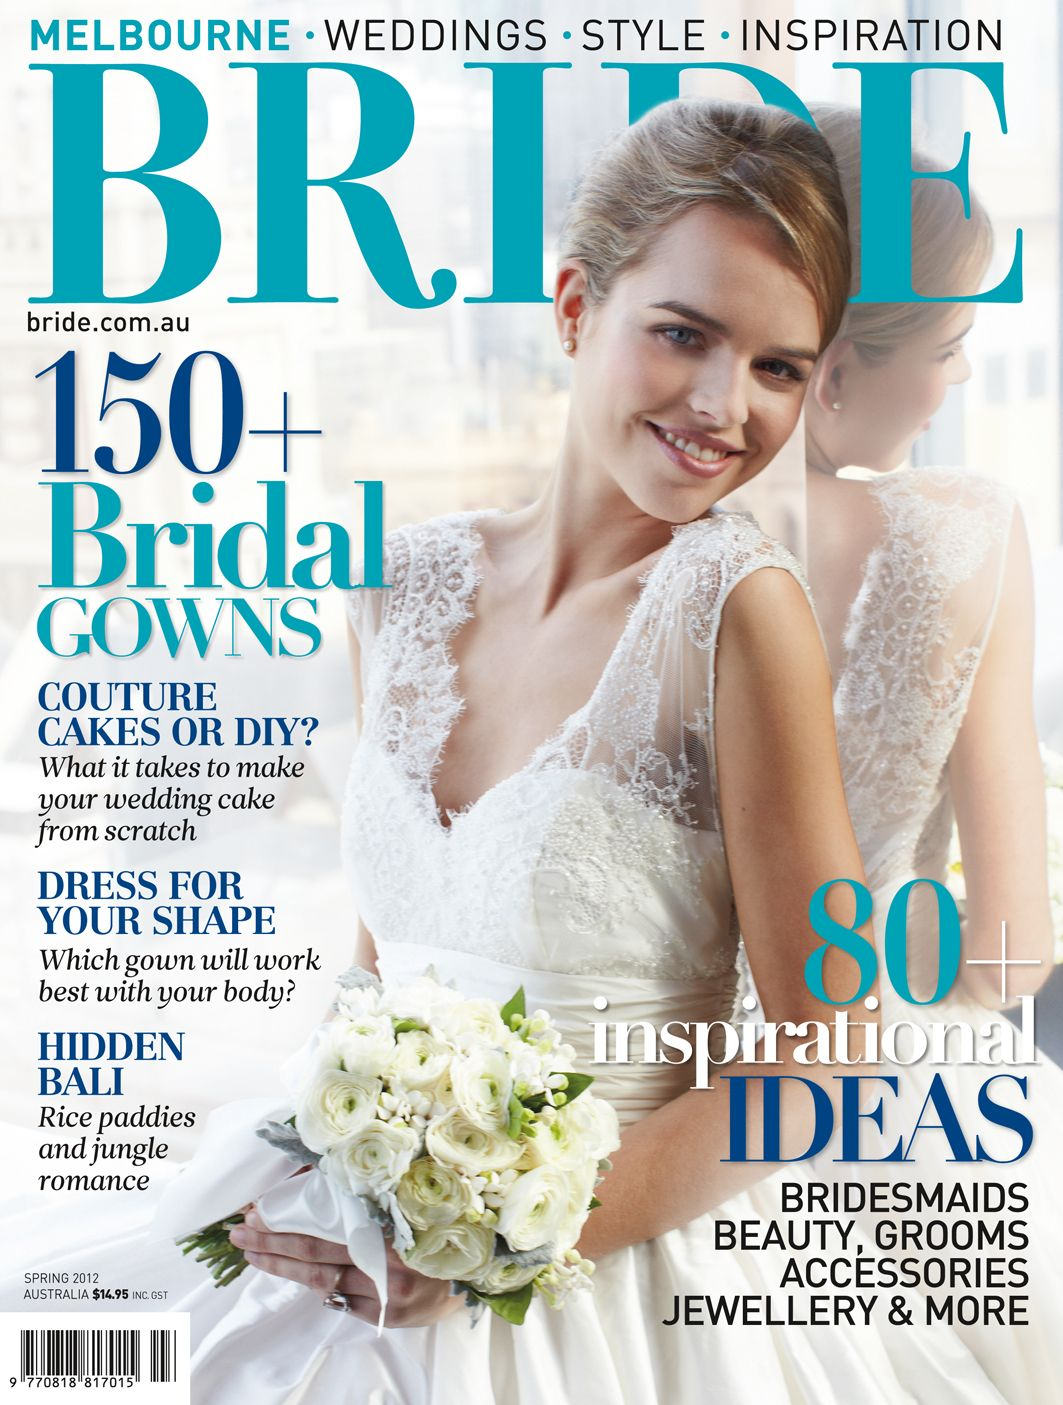 Beautiful cover of the current Melbourne Bride magazine